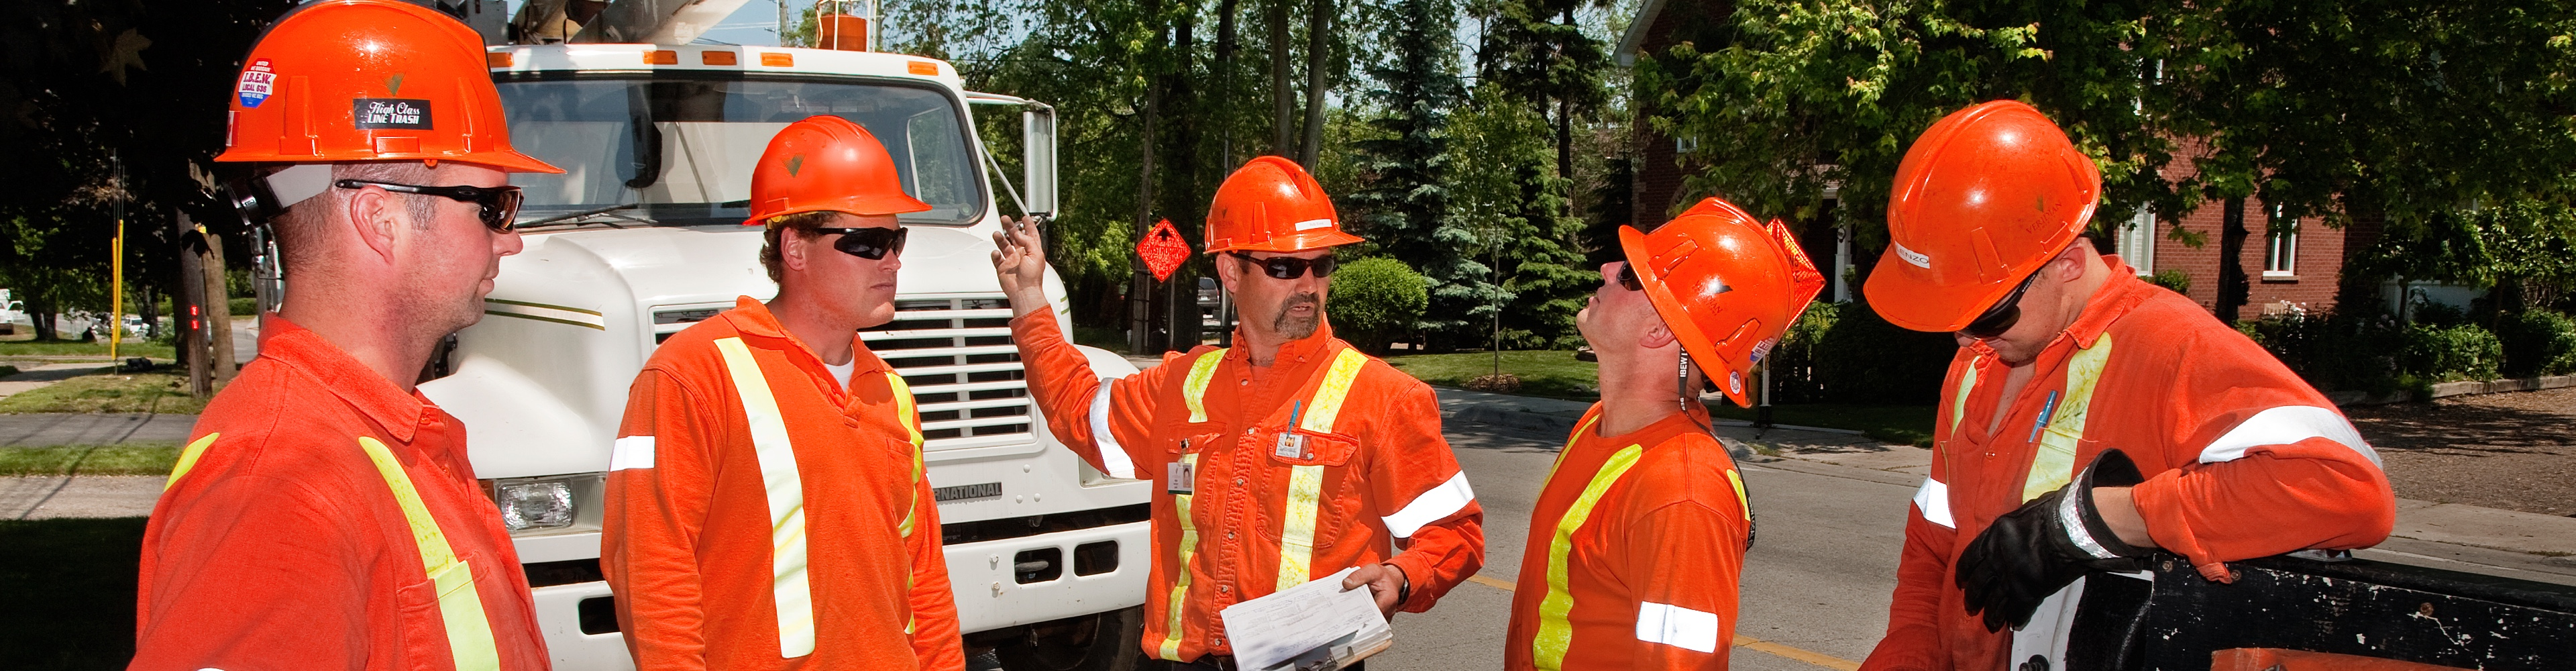 safety-on-the-job-veridian